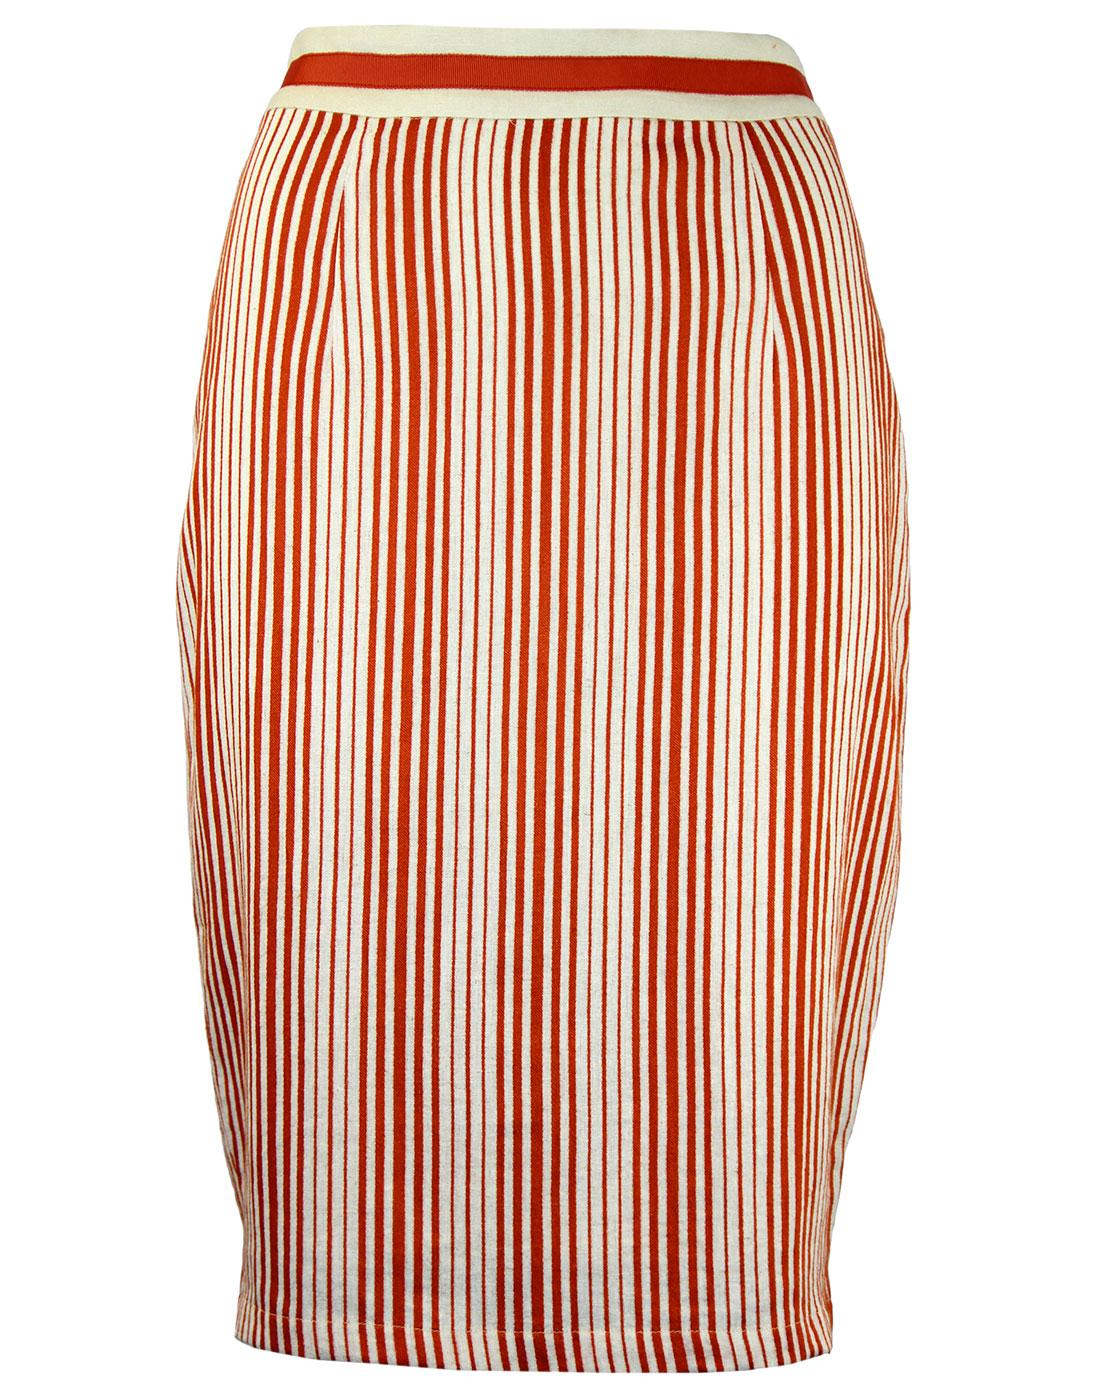 Barbican FEVER Retro 50s Linen Stripe Pencil Skirt